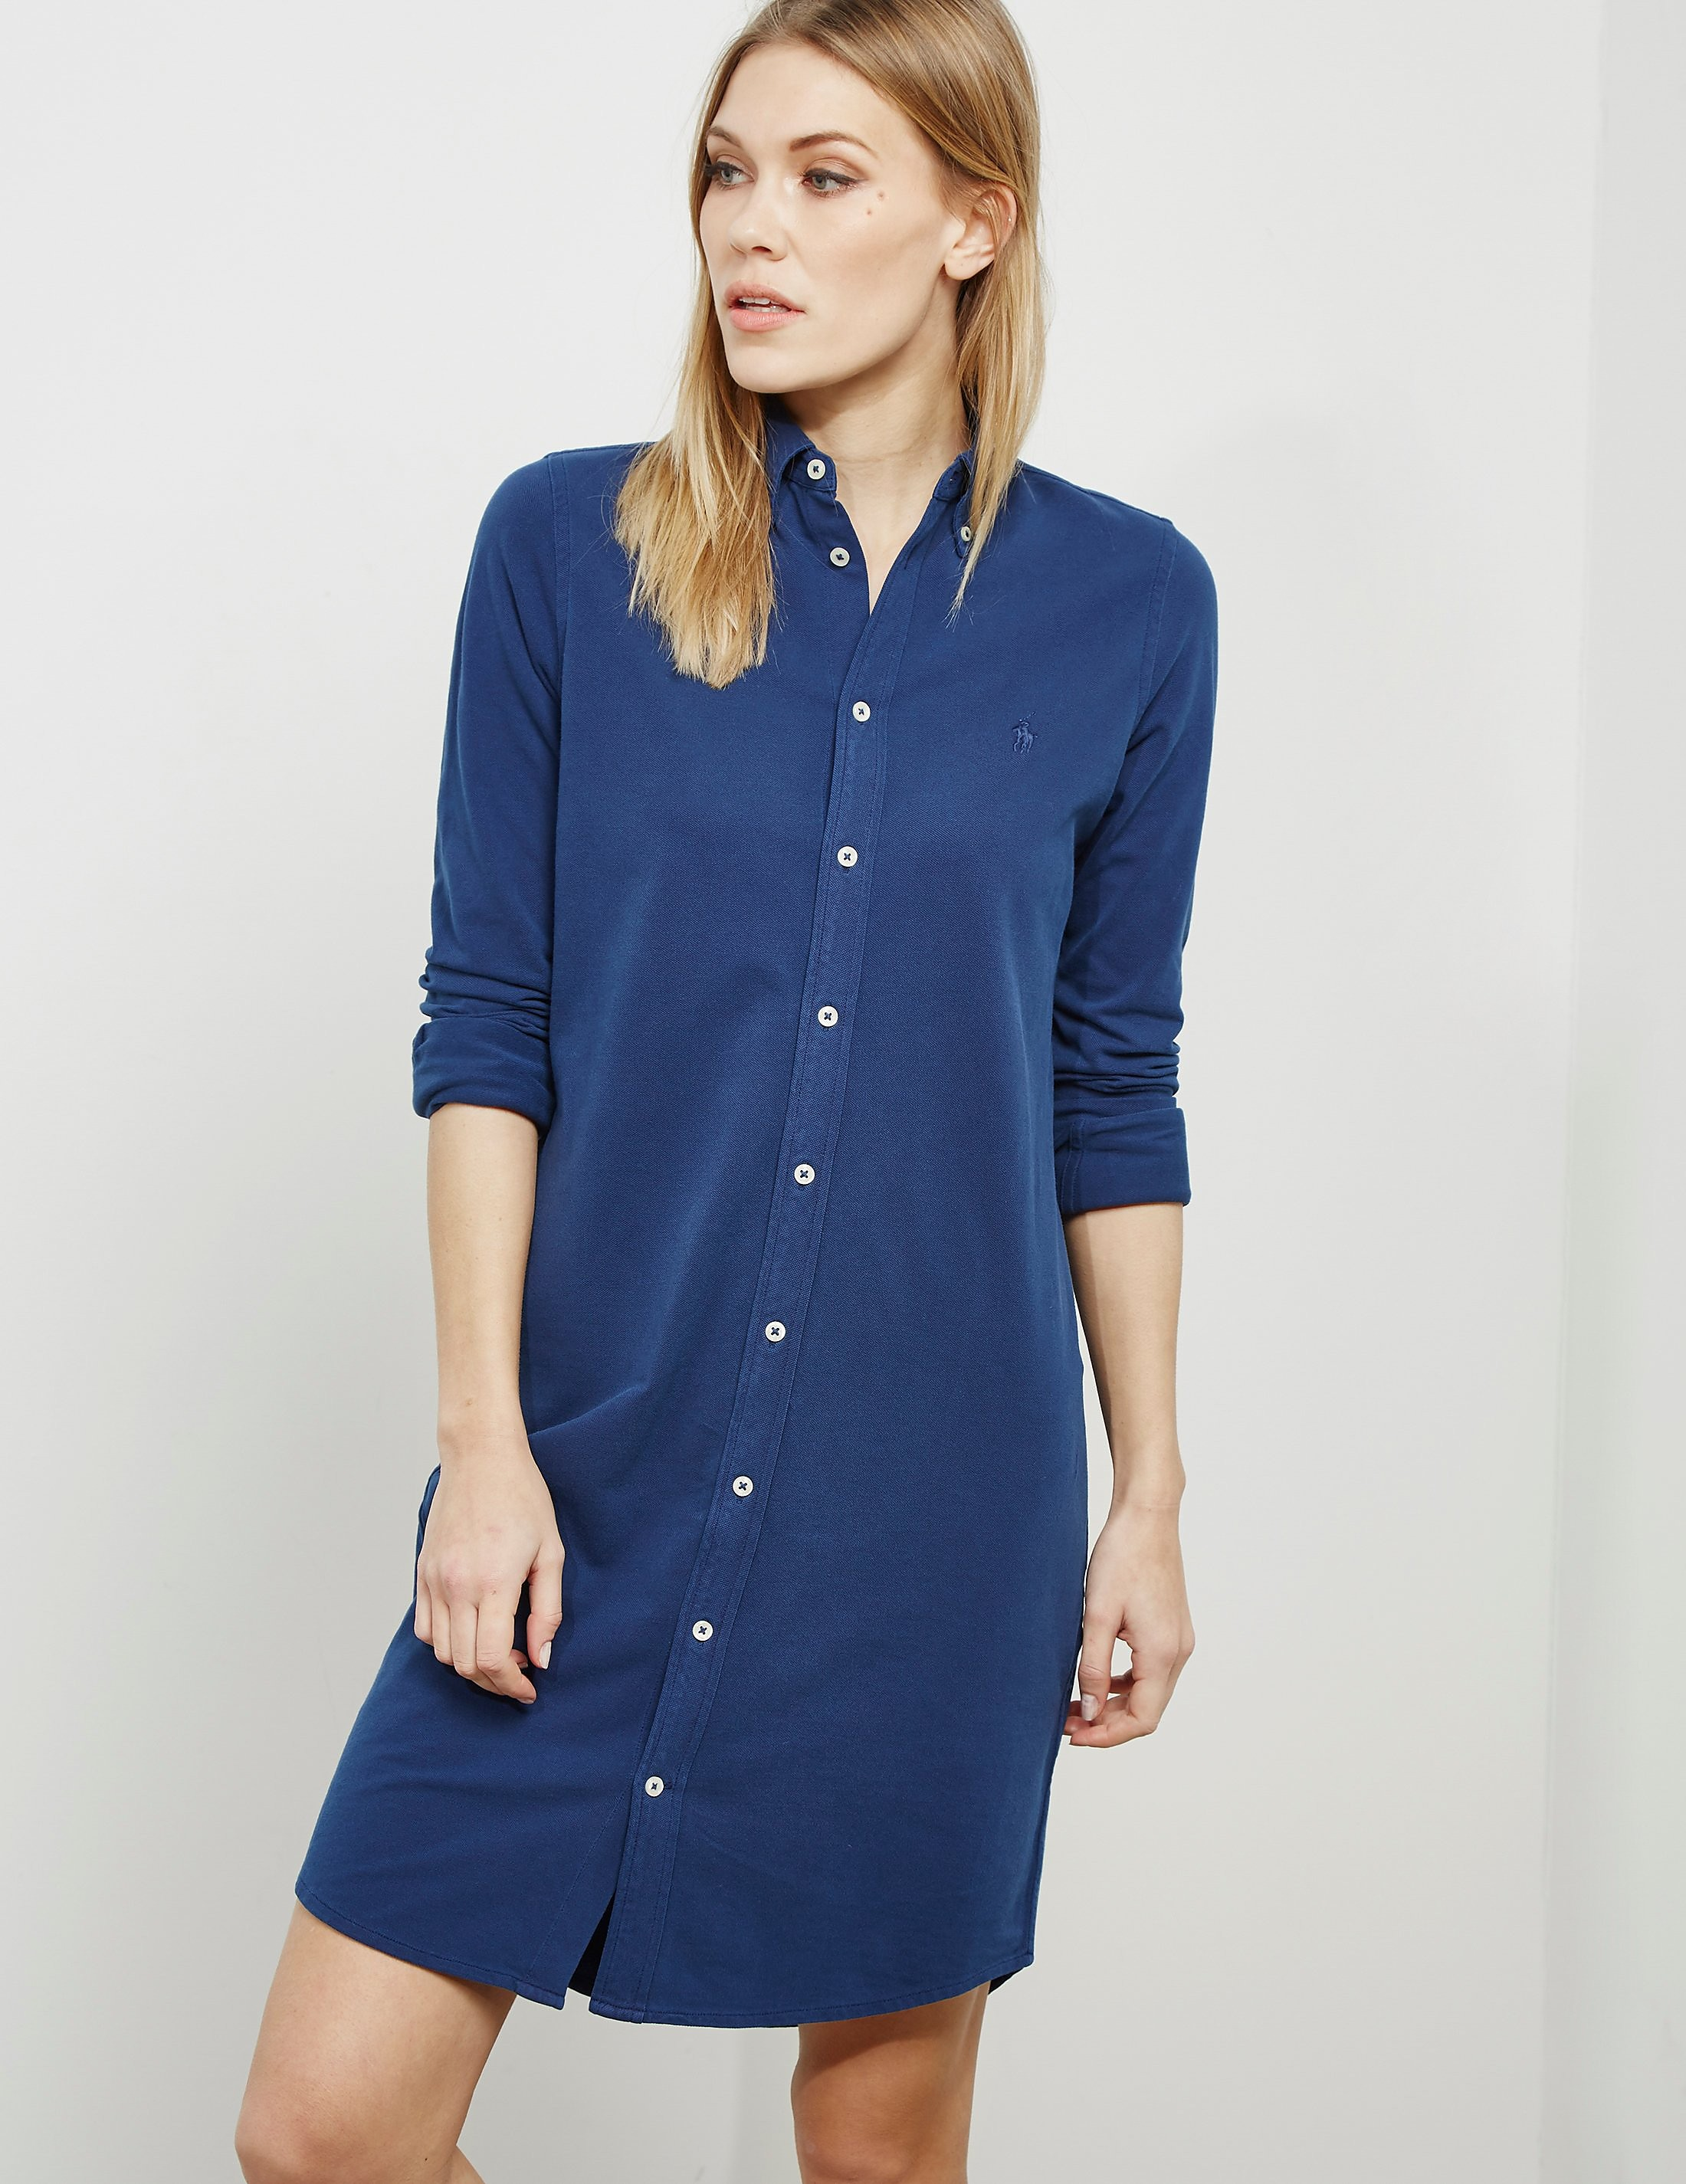 Polo Ralph Lauren Long Sleeve Shirt Dress